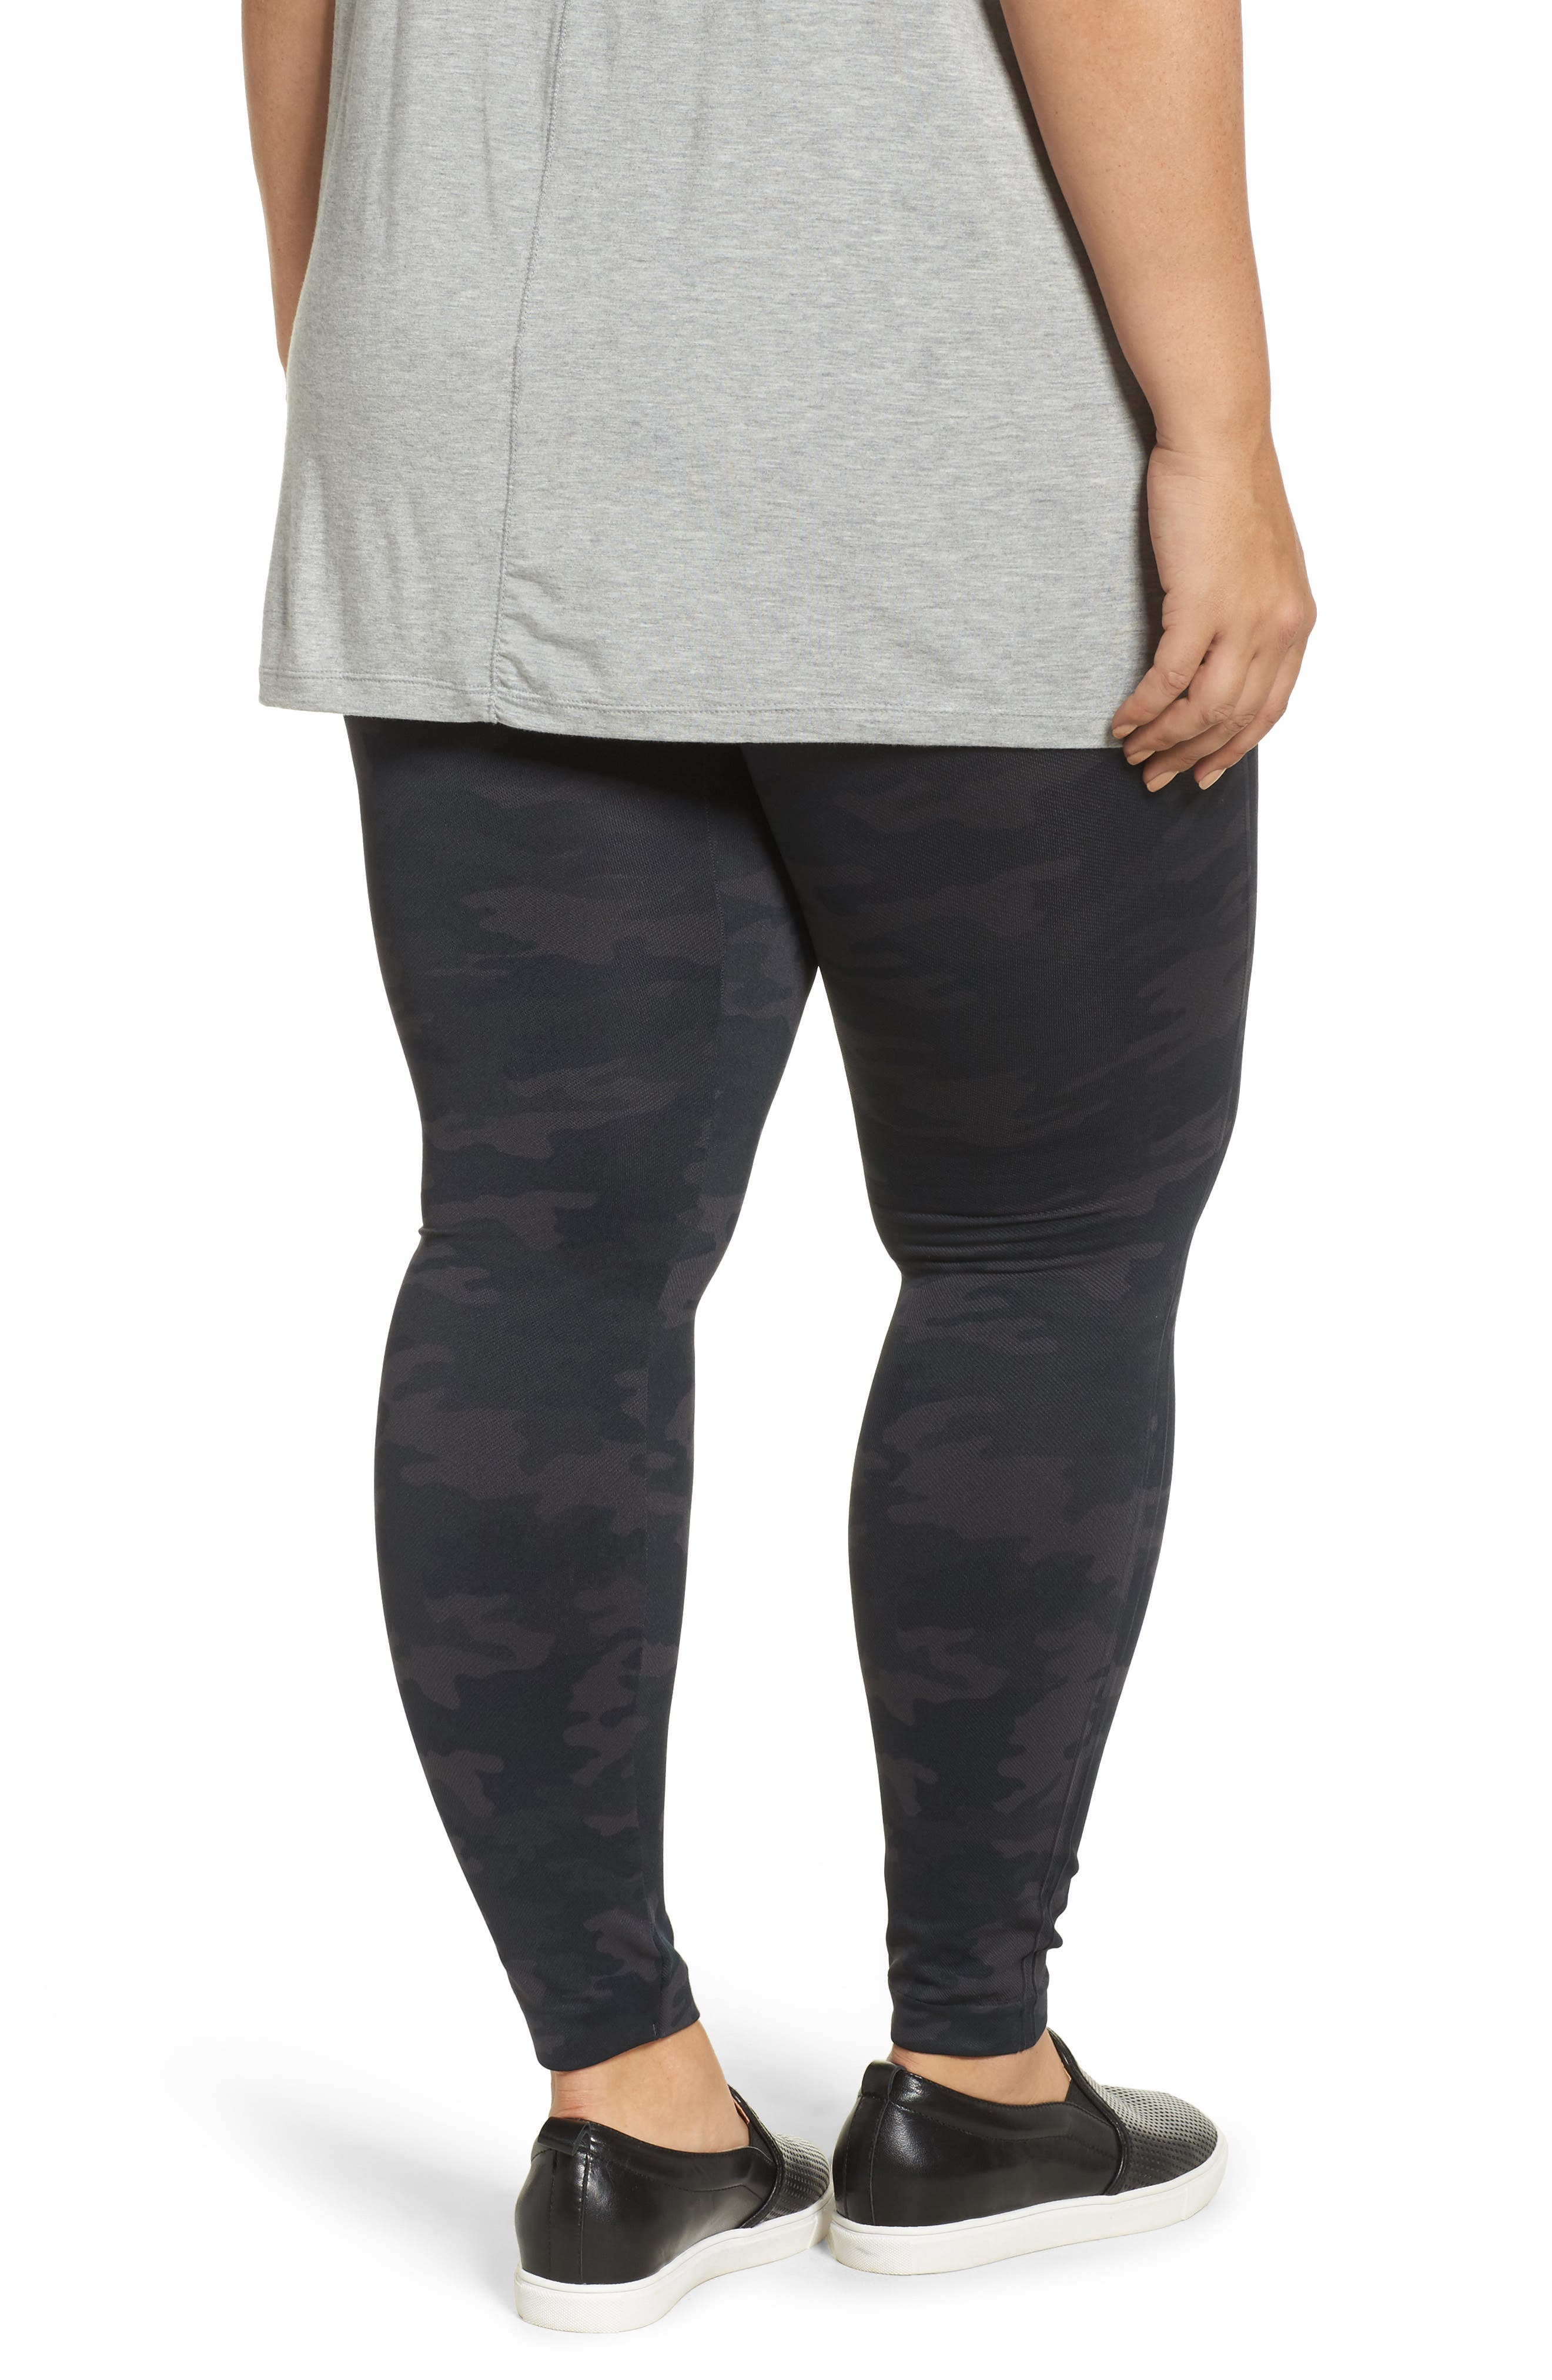 Look At Me Now Seamless Leggings,                             Alternate thumbnail 3, color,                             001